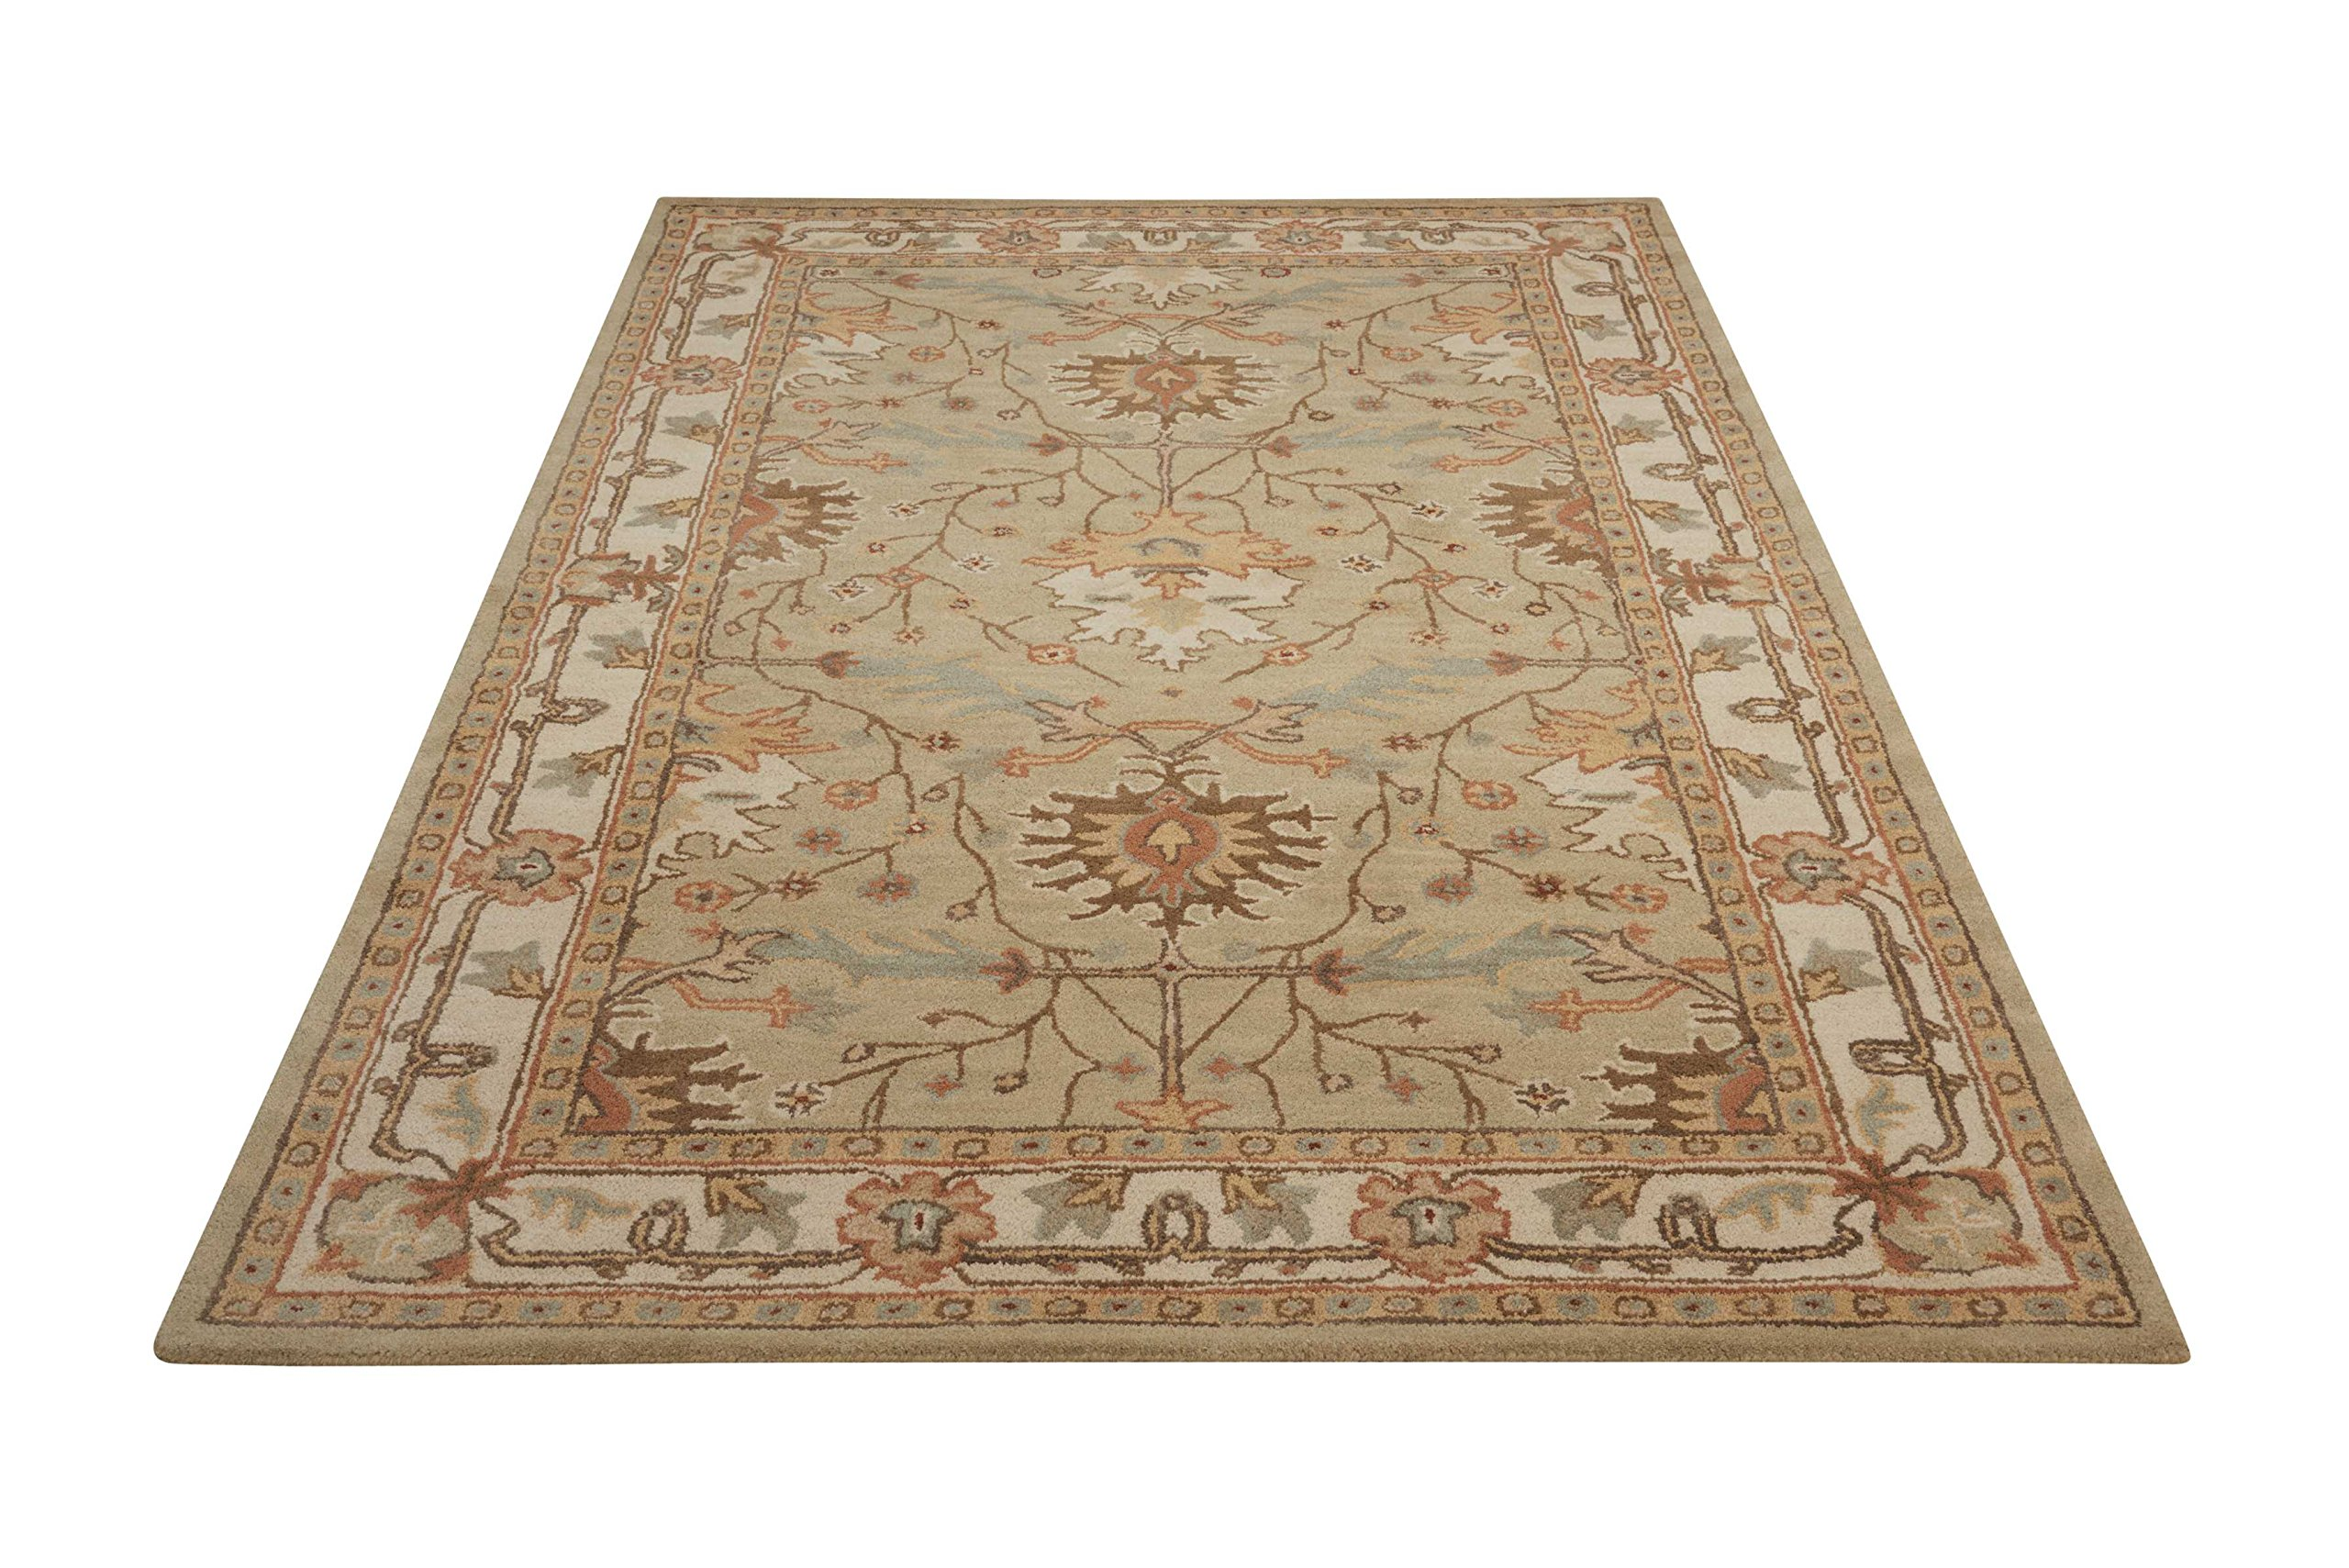 Nourison India House (IH76) Sage Rectangle Area Rug, 2-Feet 6-Inches by 4-Feet (2'6'' x 4') by Nourison (Image #3)